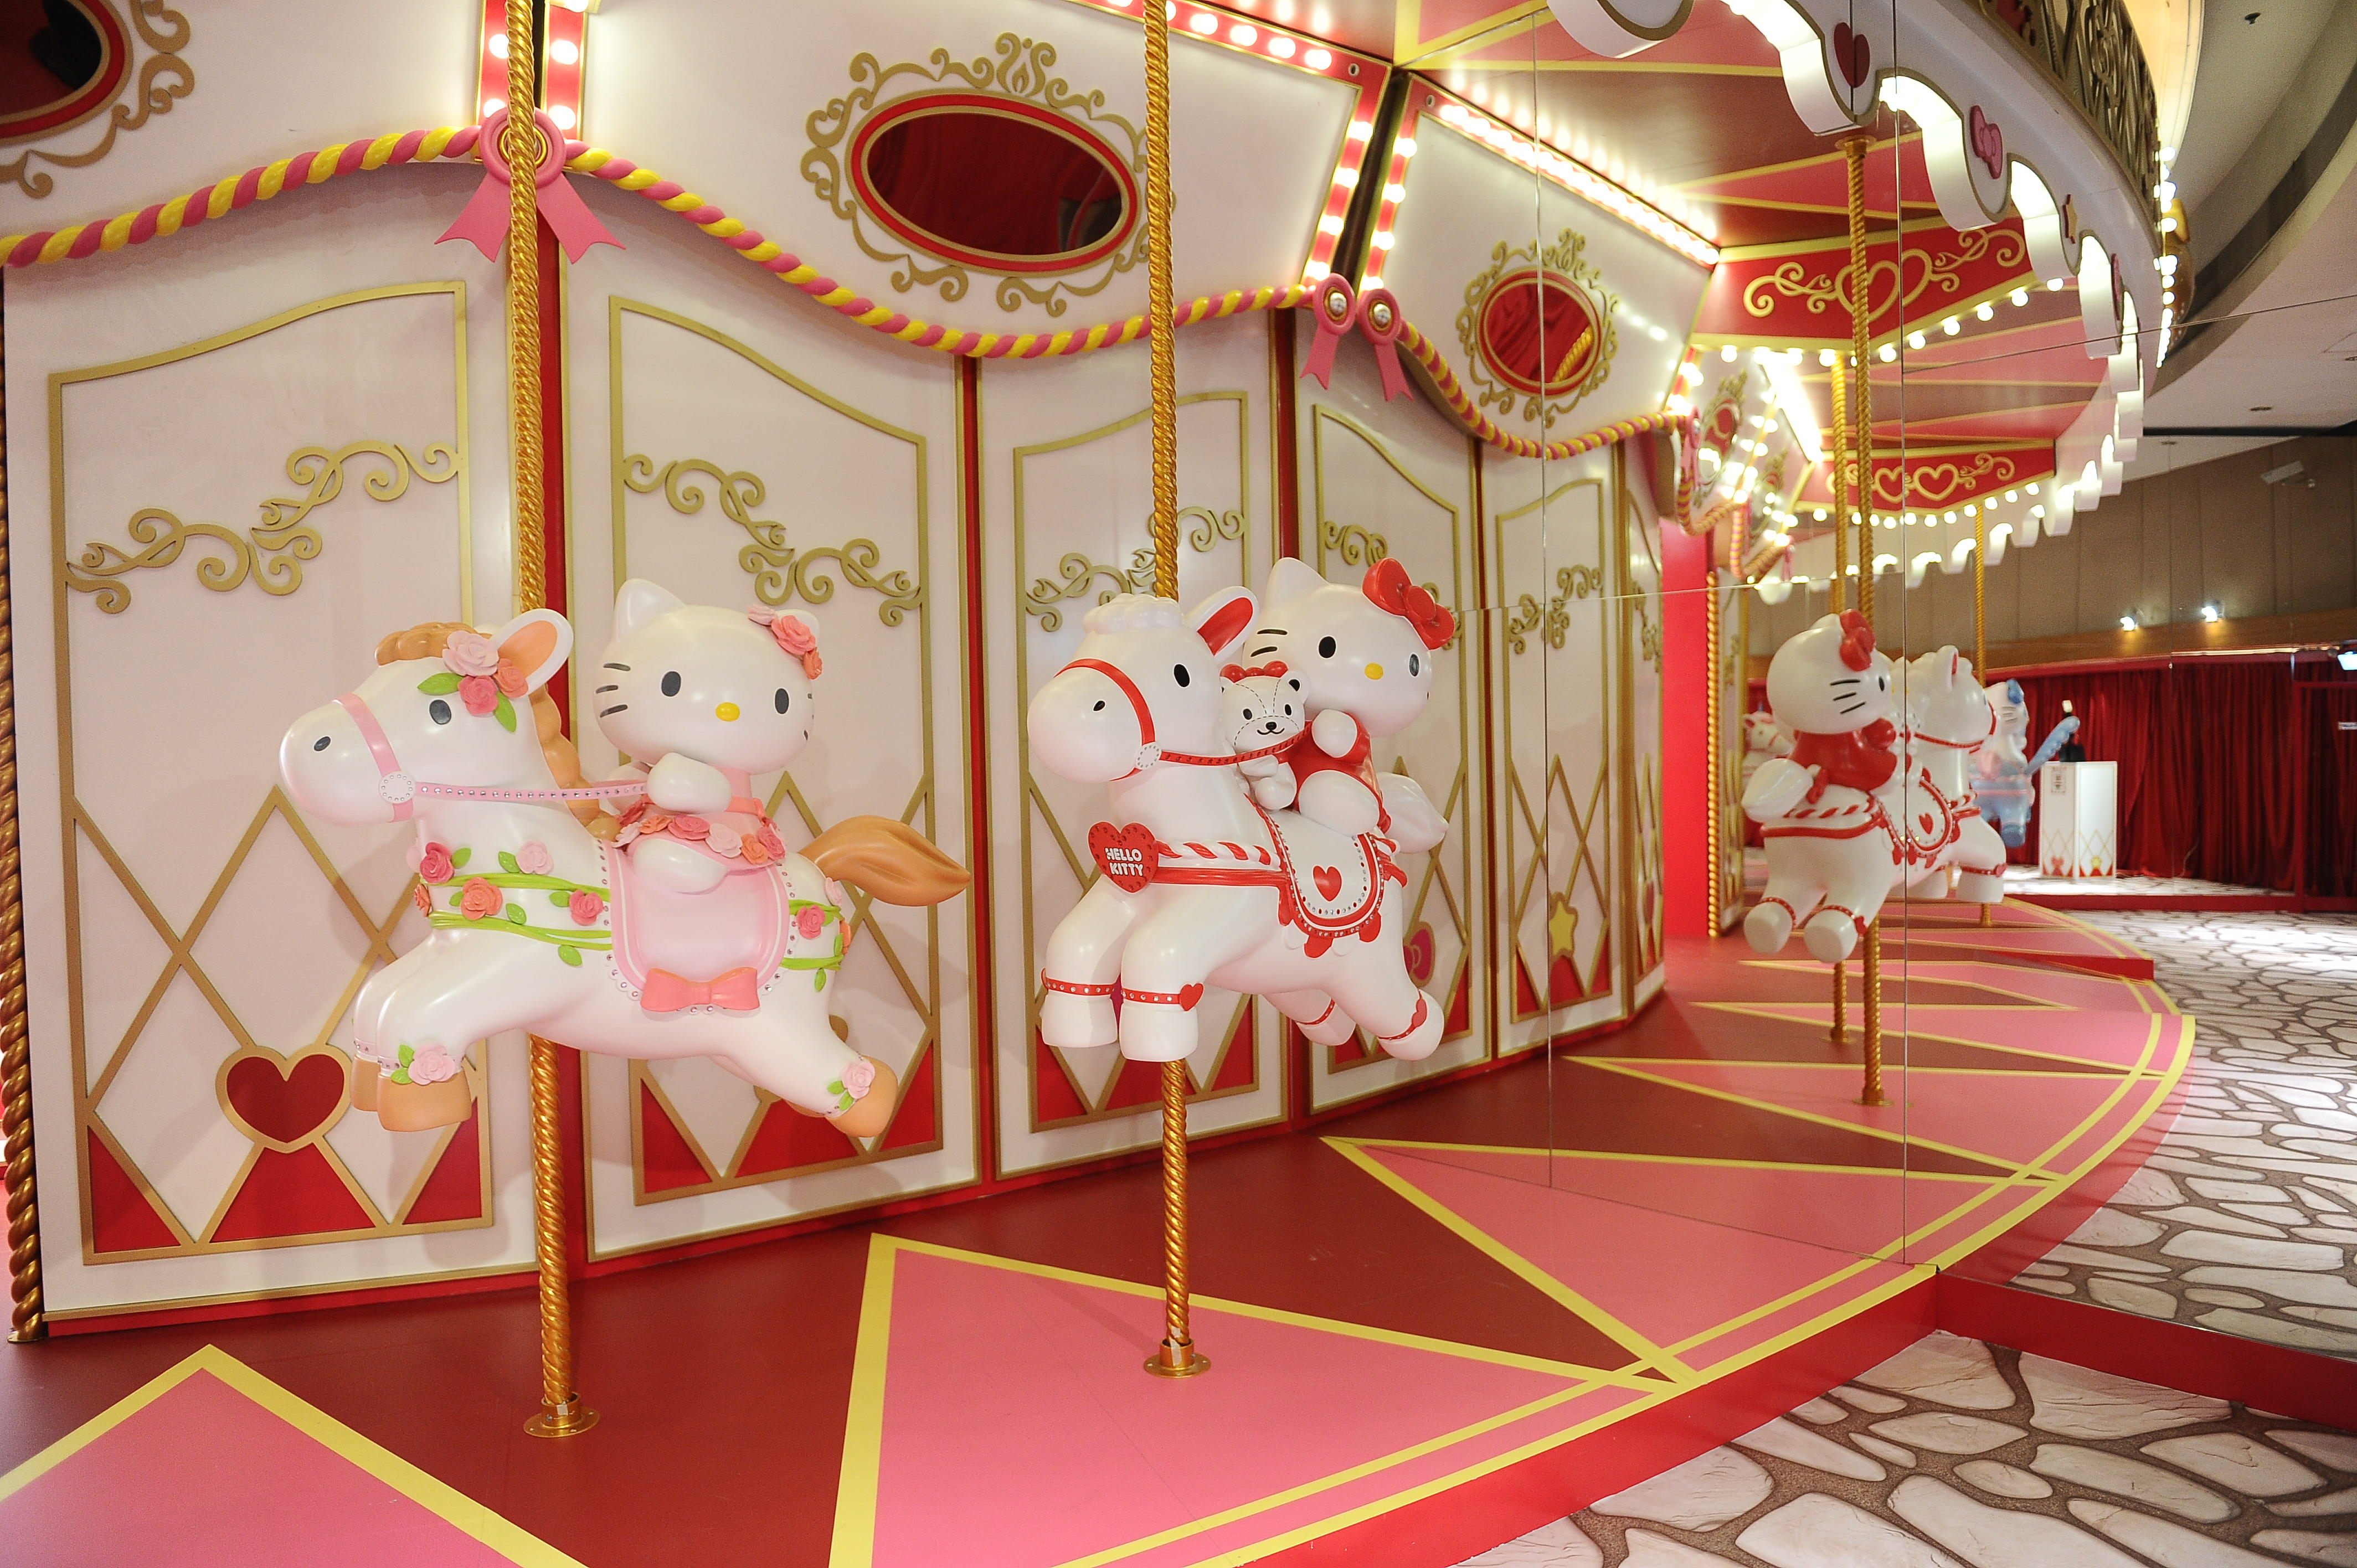 Complete Your Visit With A Photo At The Ferris Wheel Hello Kitty And All Her Friends